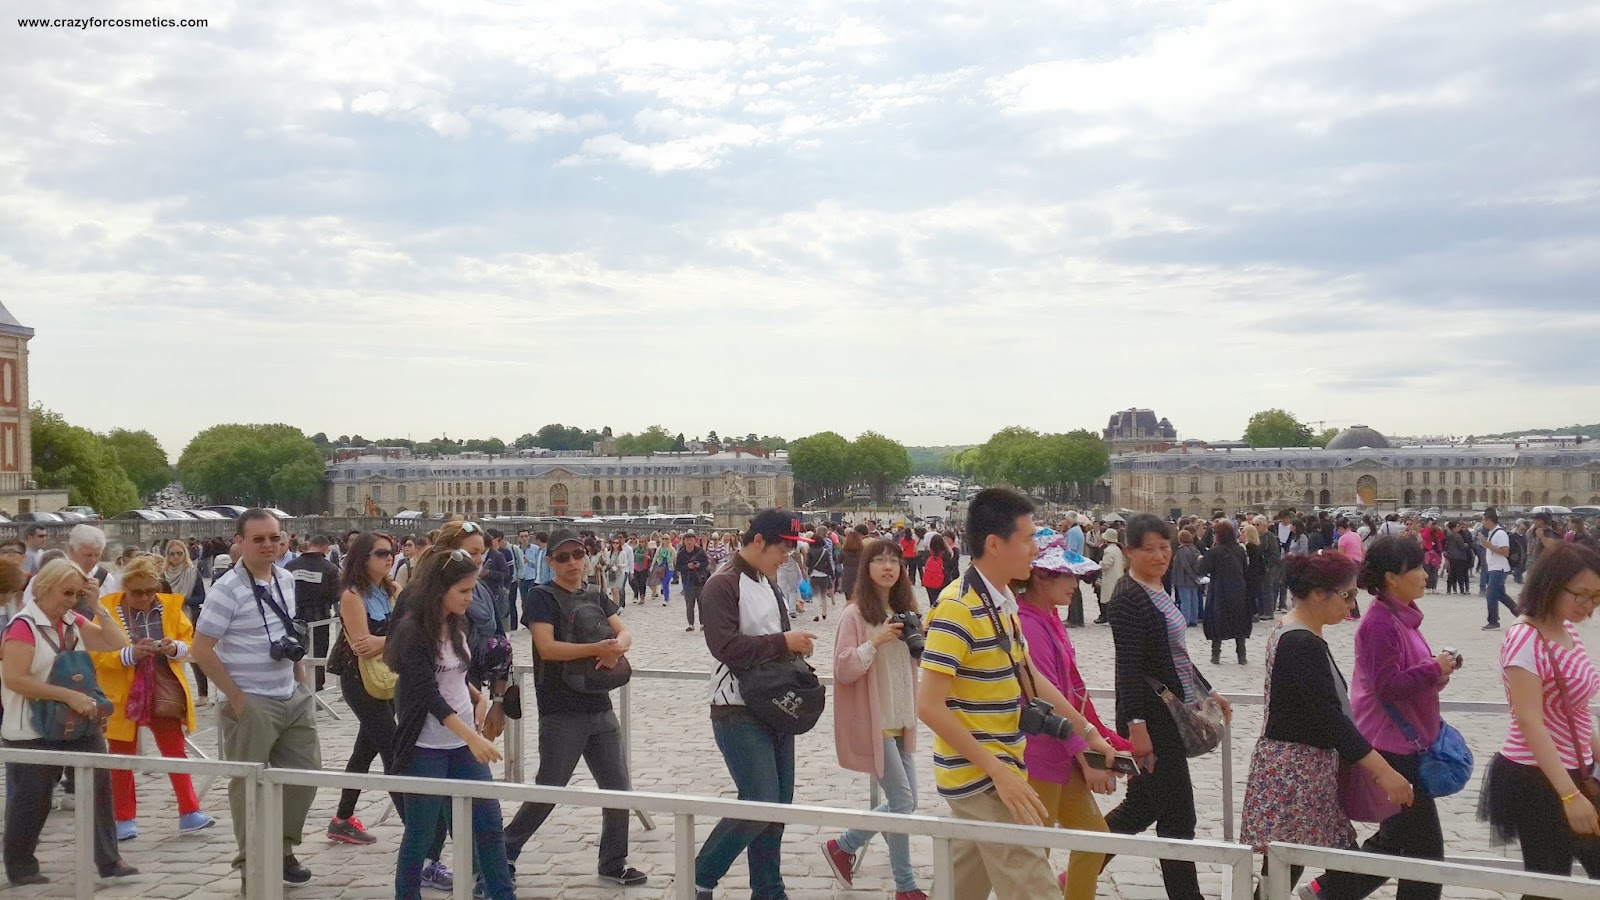 palace of versailles images